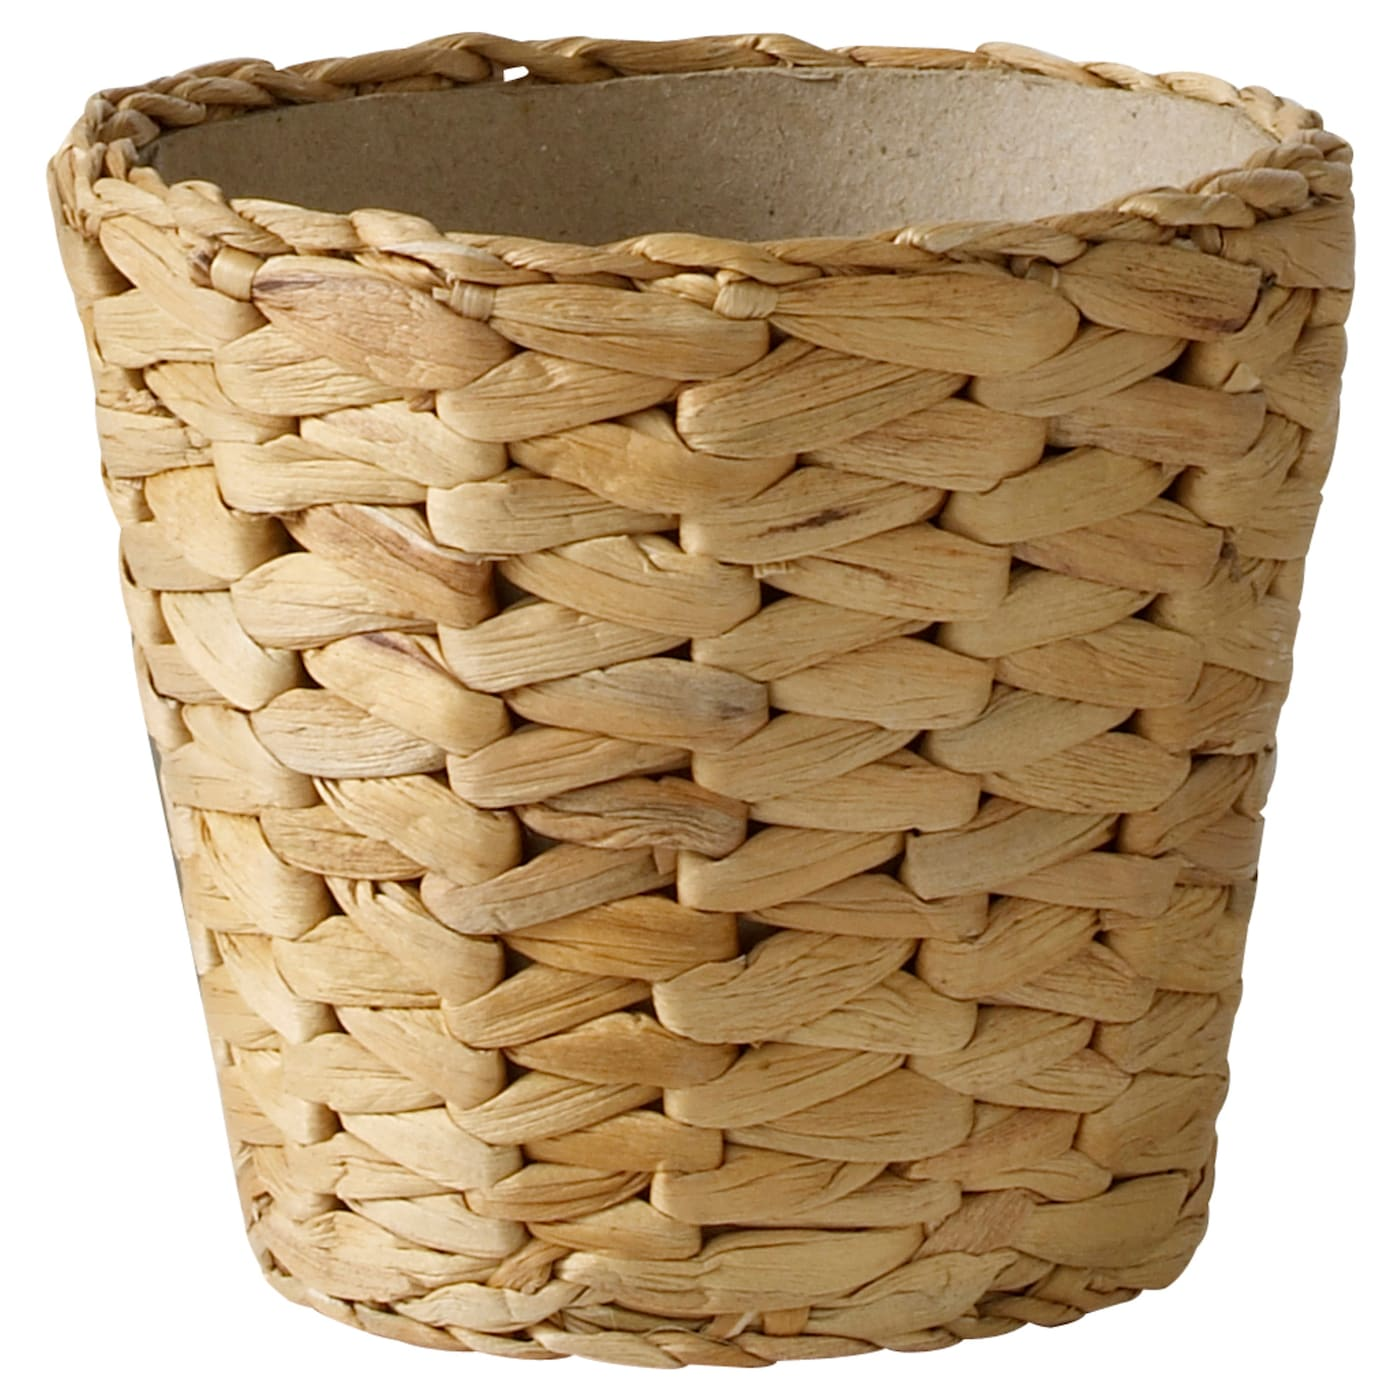 IKEA FRIDFULL plant pot A plastic inner pot makes the plant pot waterproof.